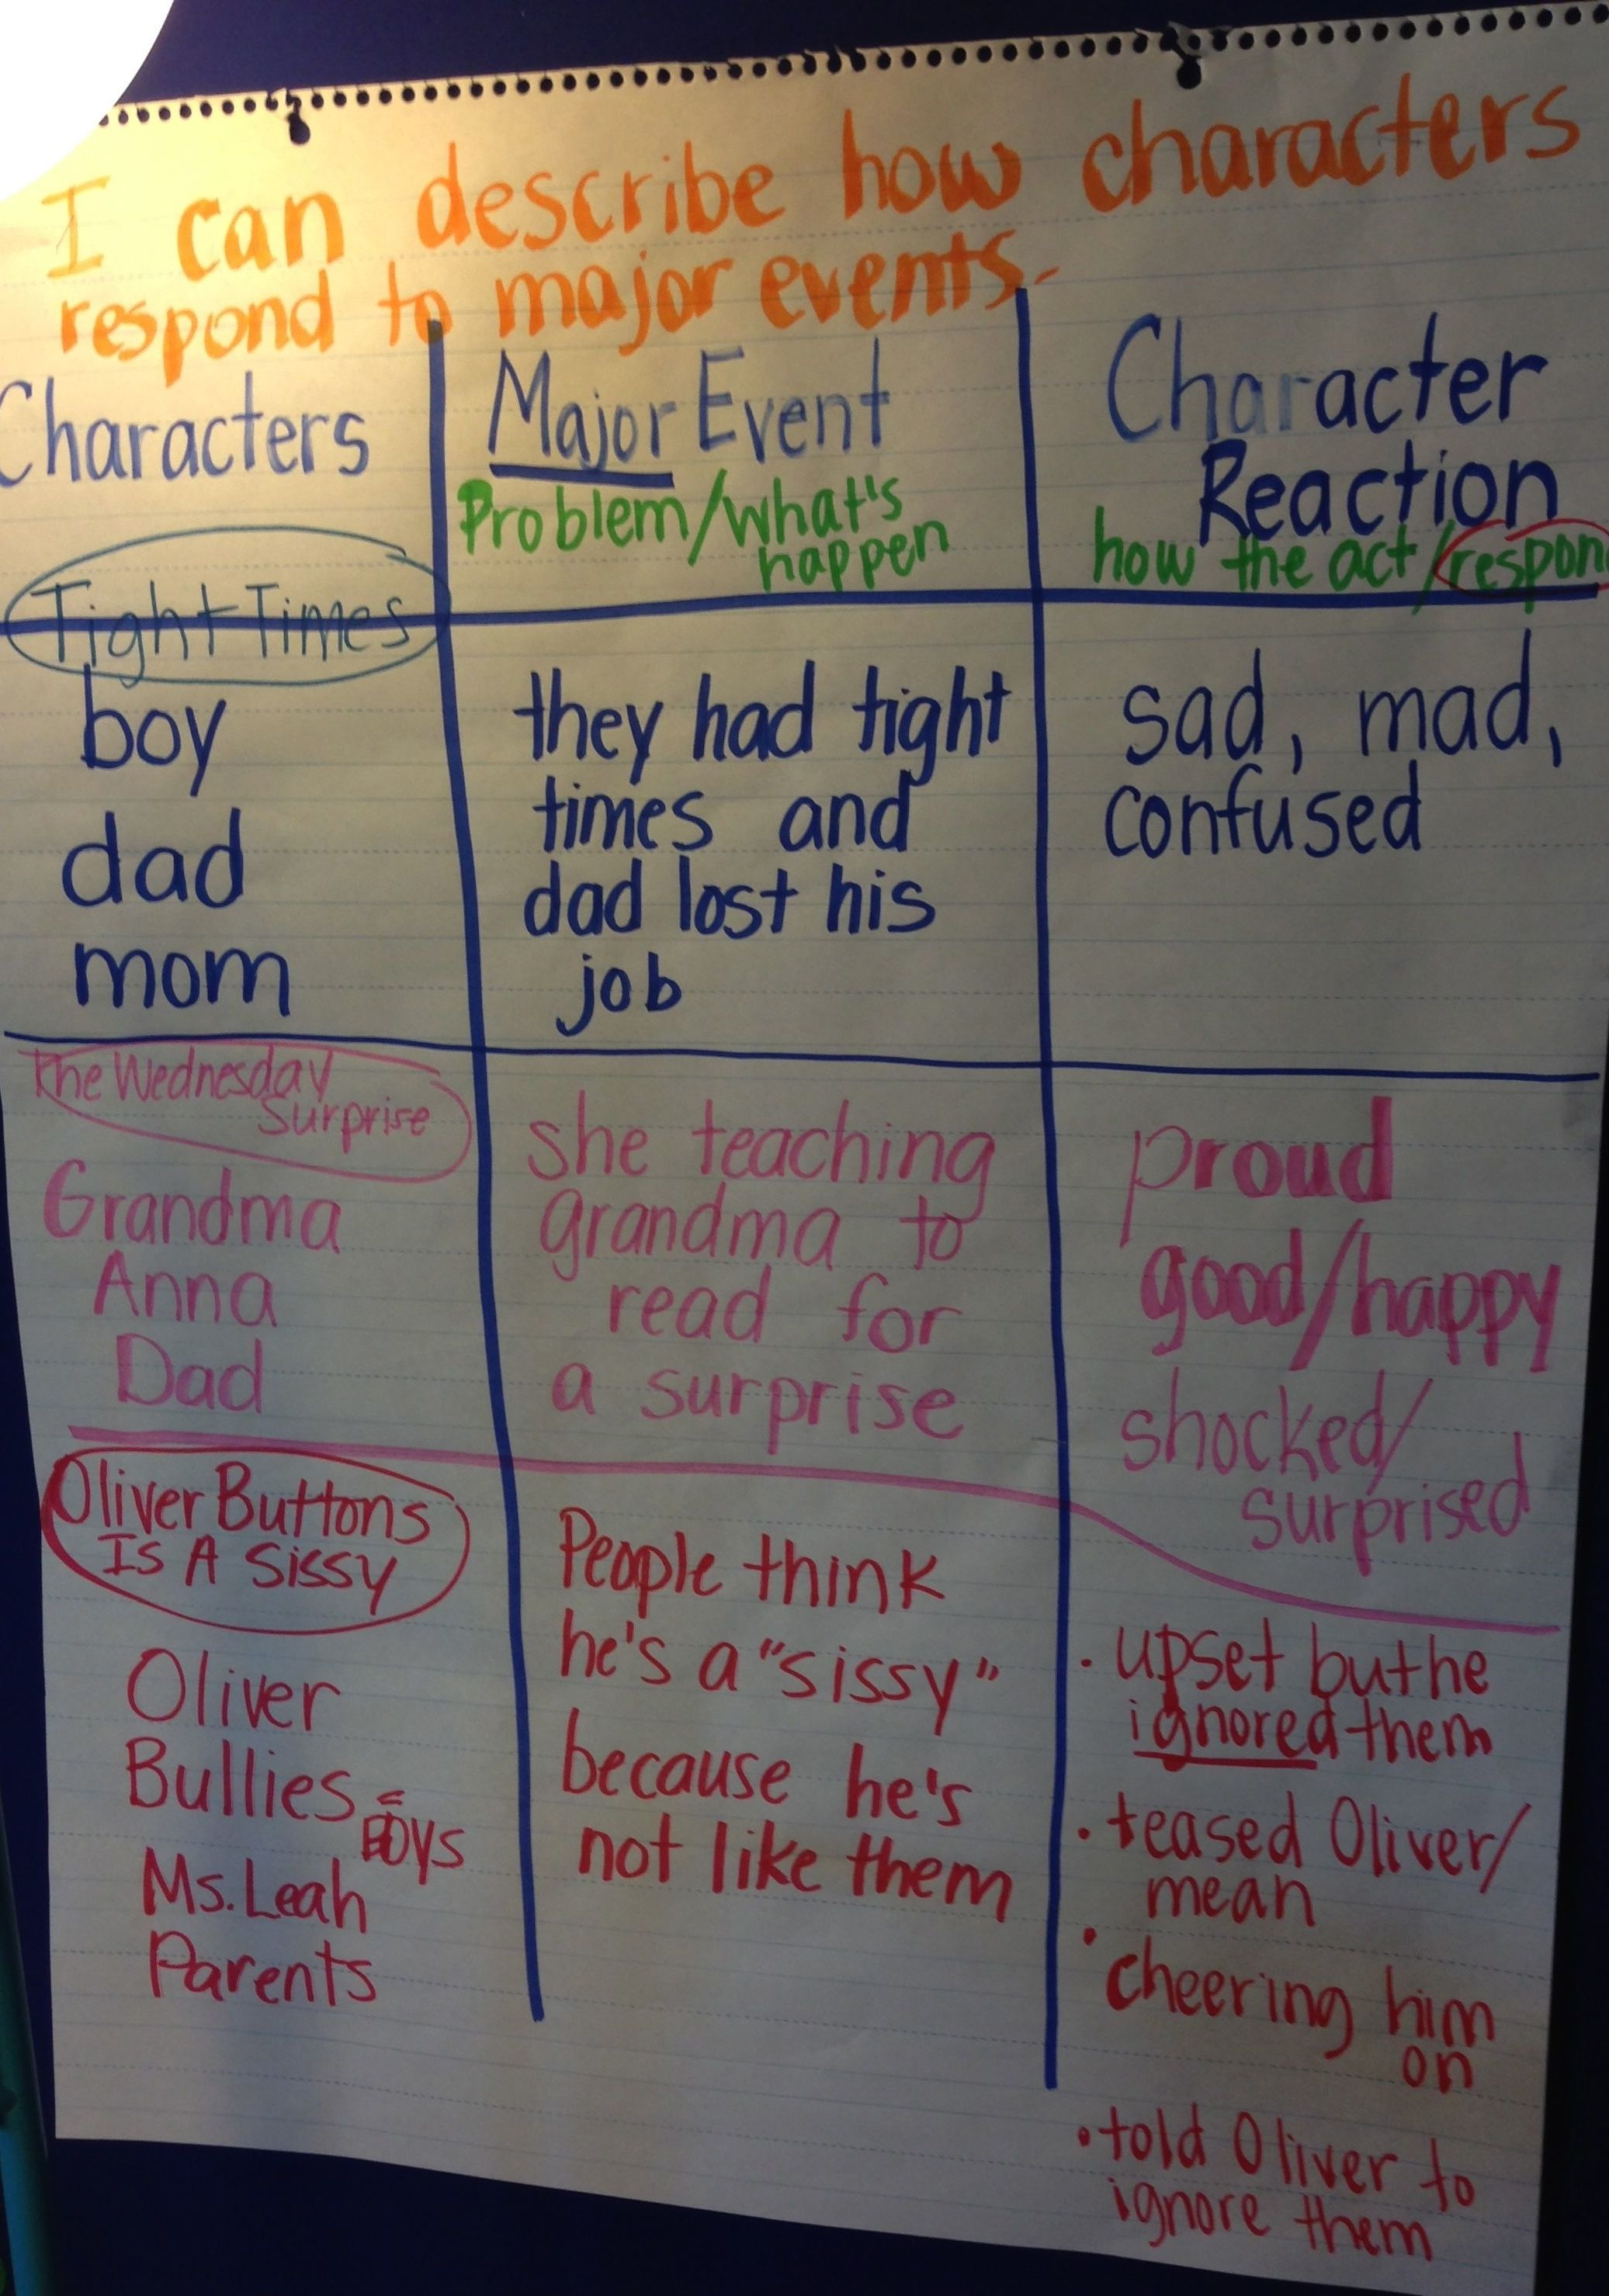 Describing How CharacterS Respond To Major Events In Text